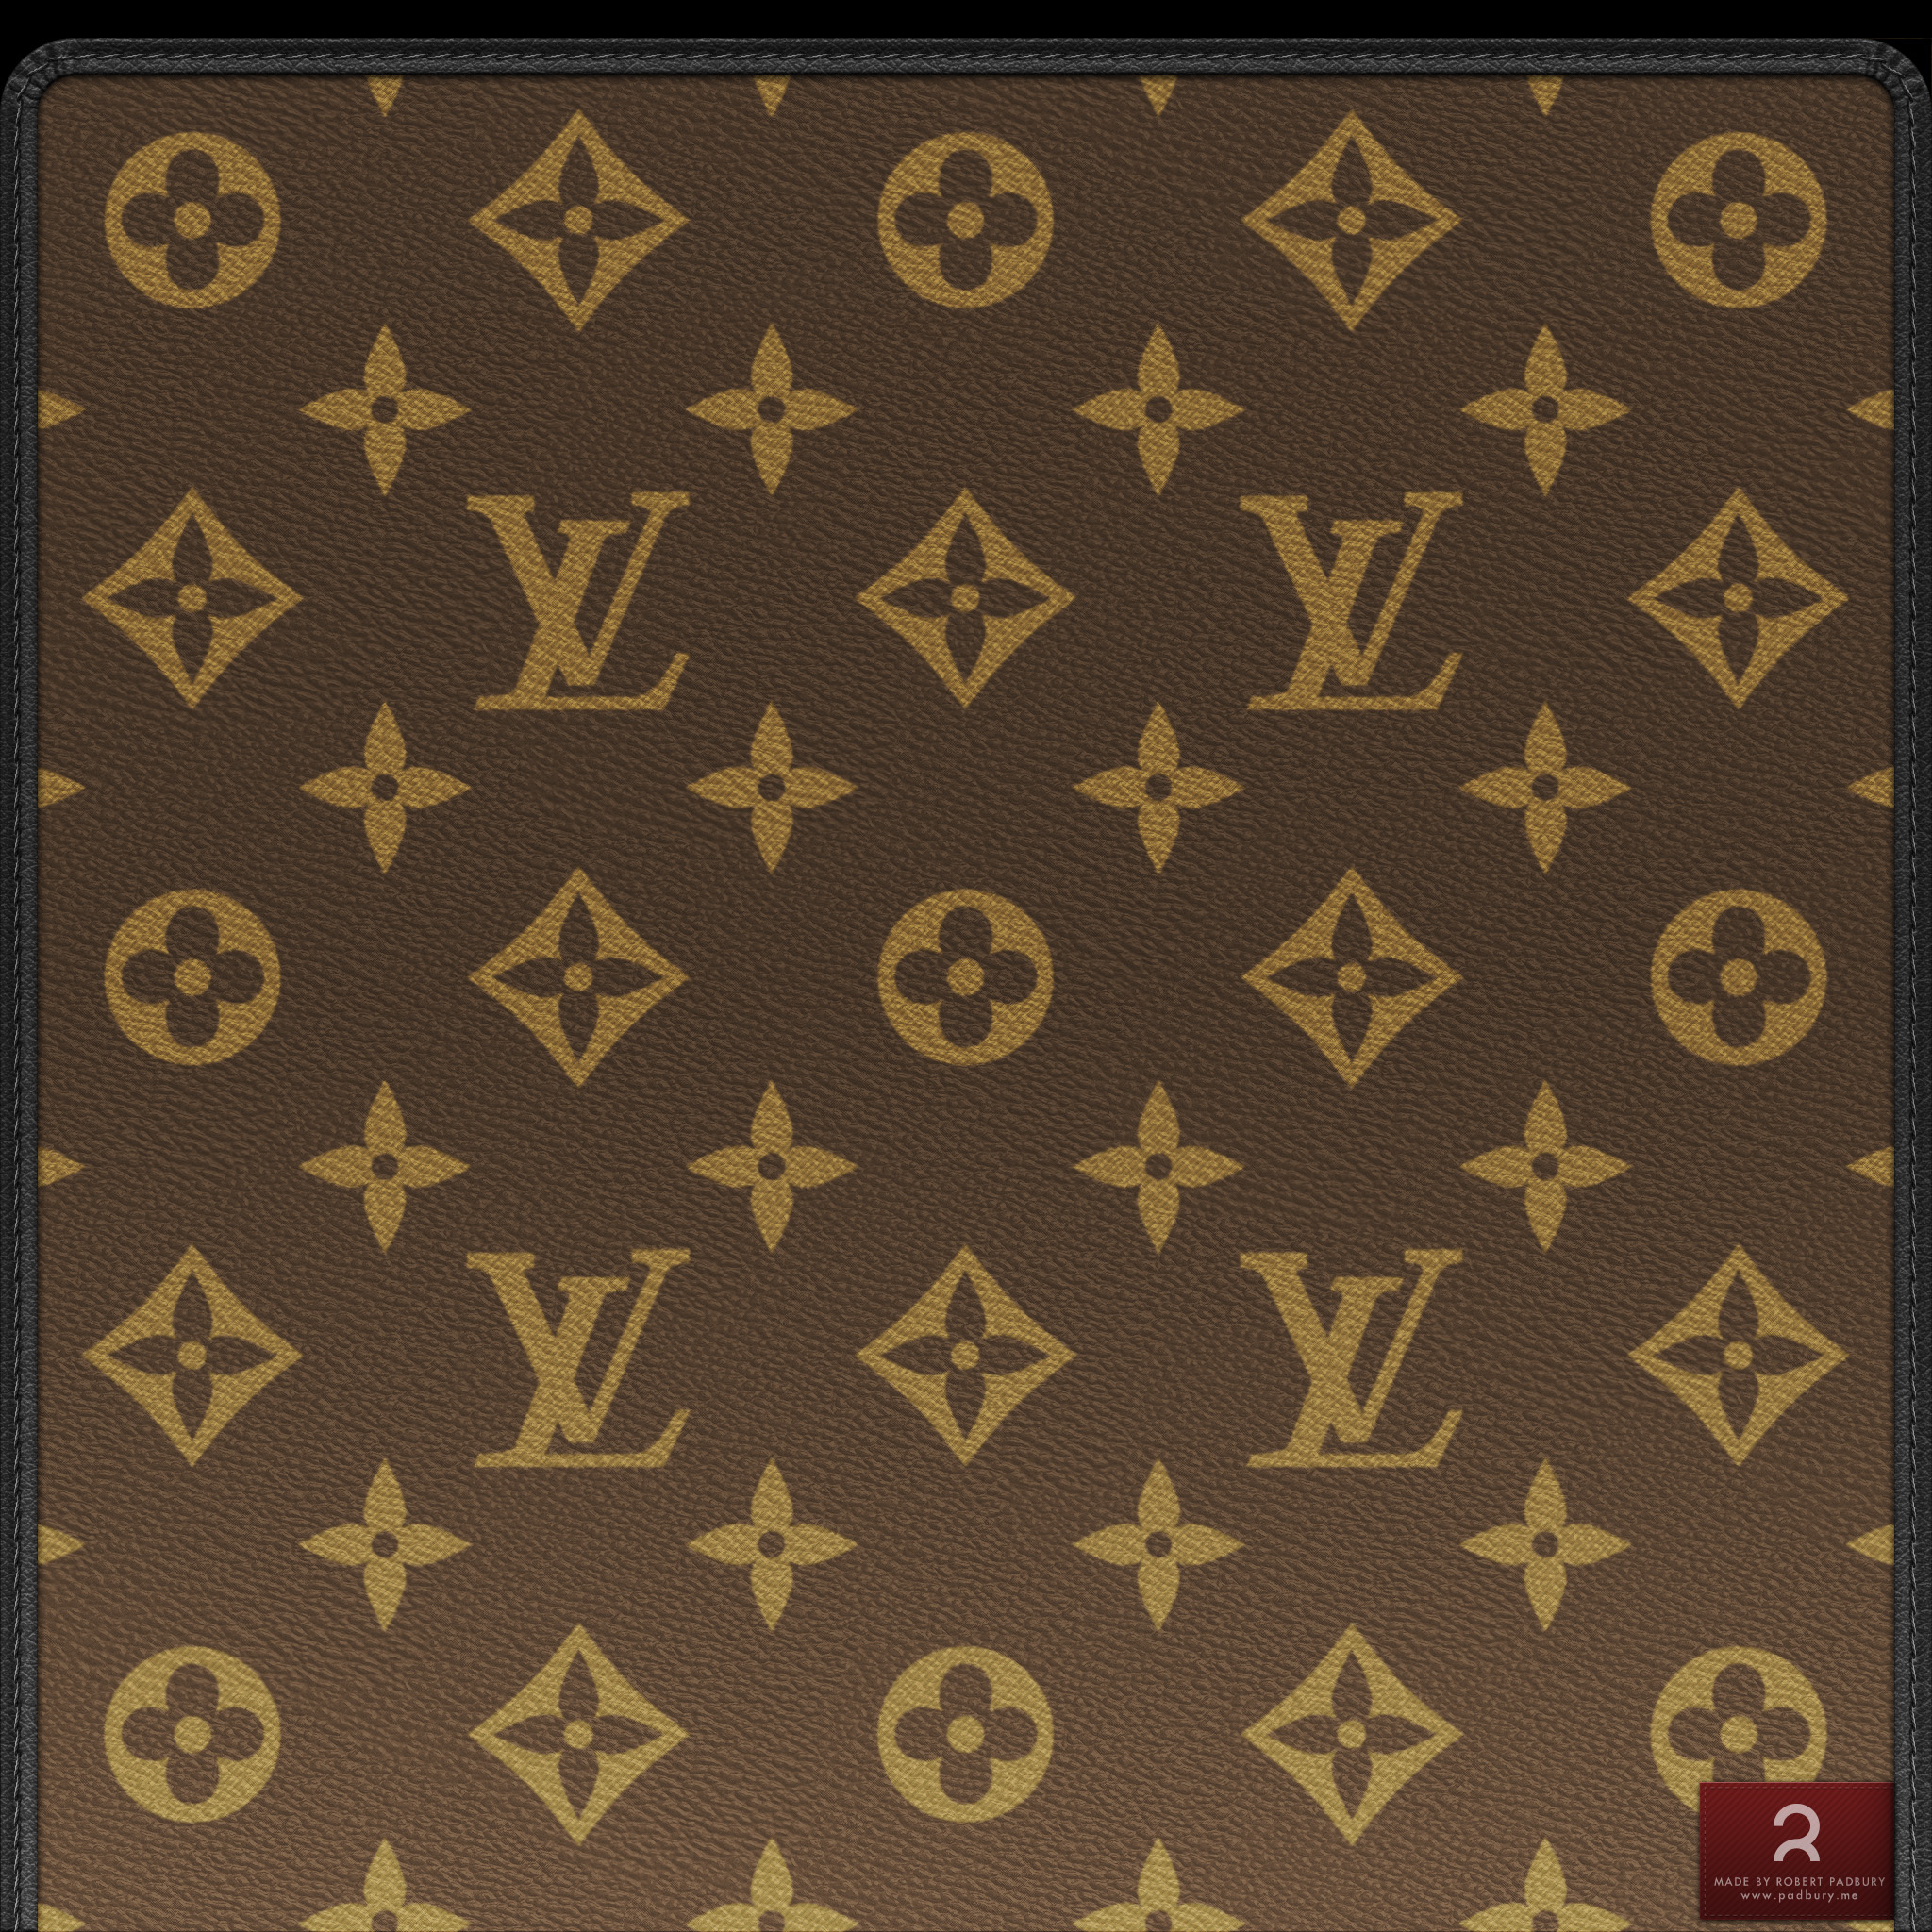 Louis Vuitton Wallpaper For Home